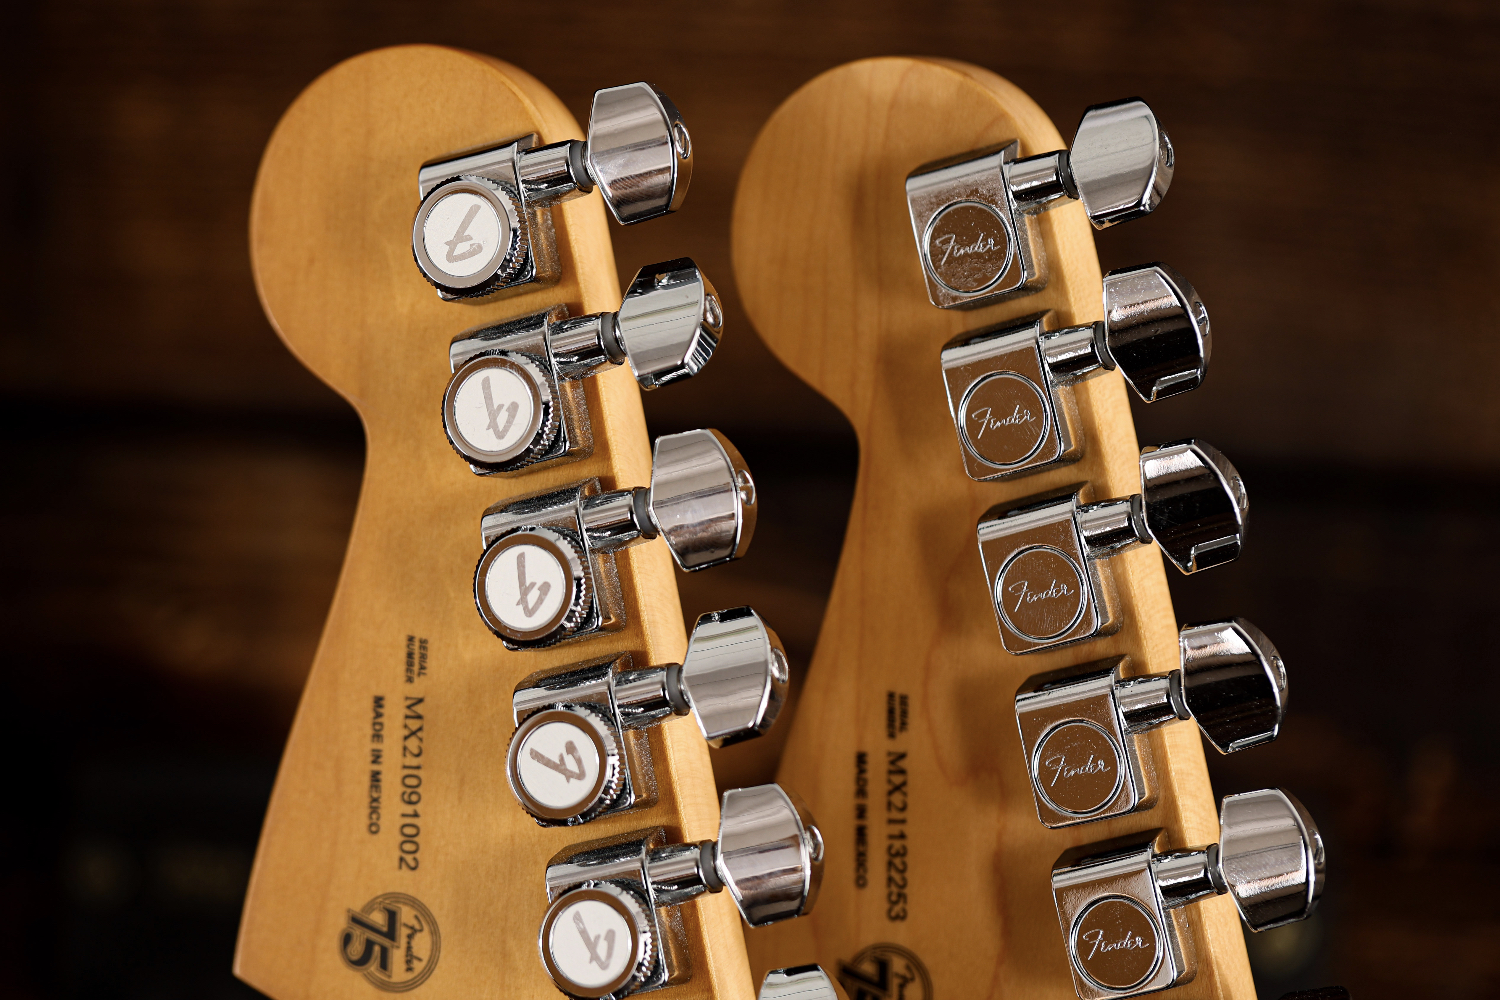 Fender Player Plus vs Player Series Tuners